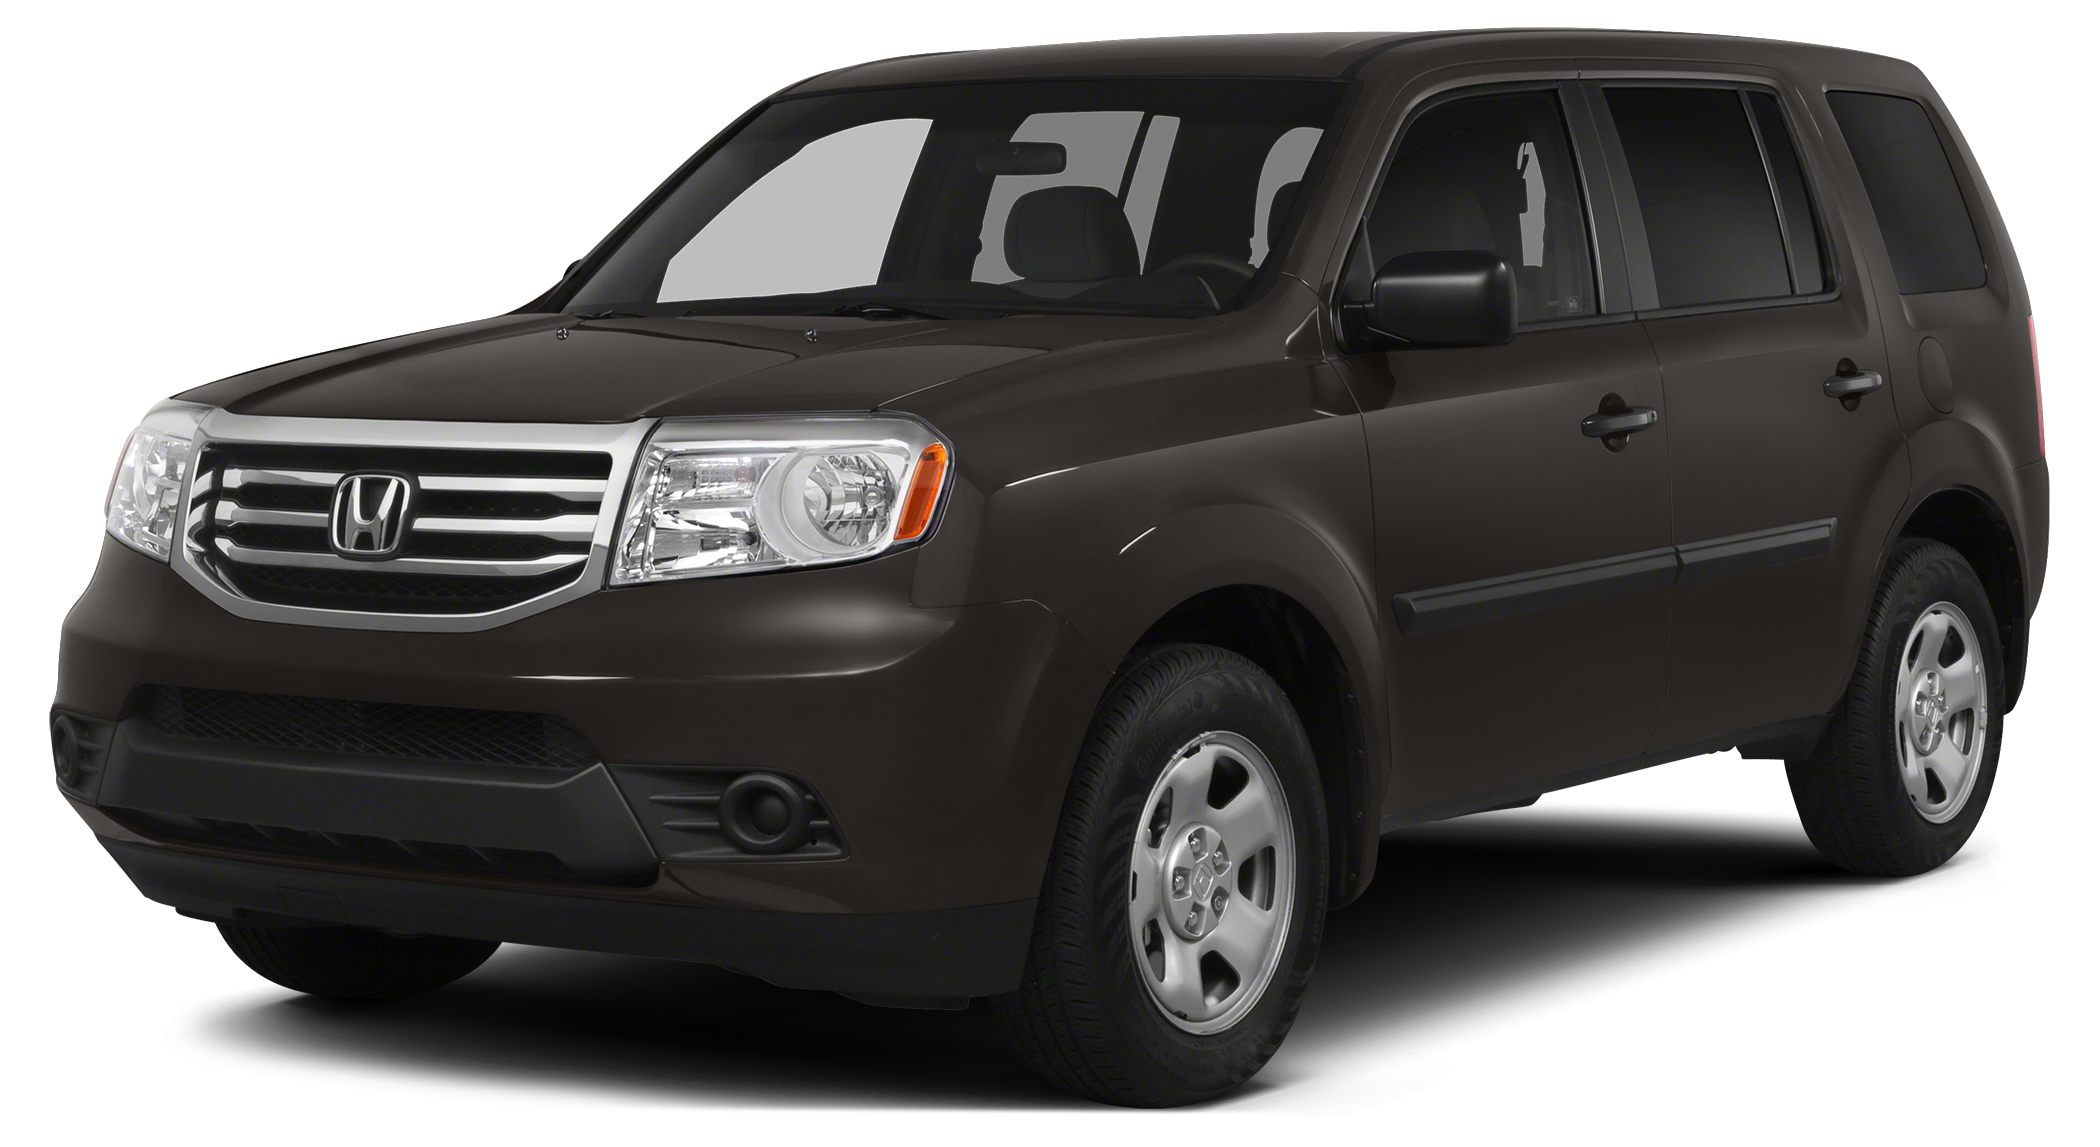 2014 Honda Pilot LX  WHEN IT COMES TO EXCELLENCE IN USED CAR SALESYOU KNOW YOURE AT STAR AUT